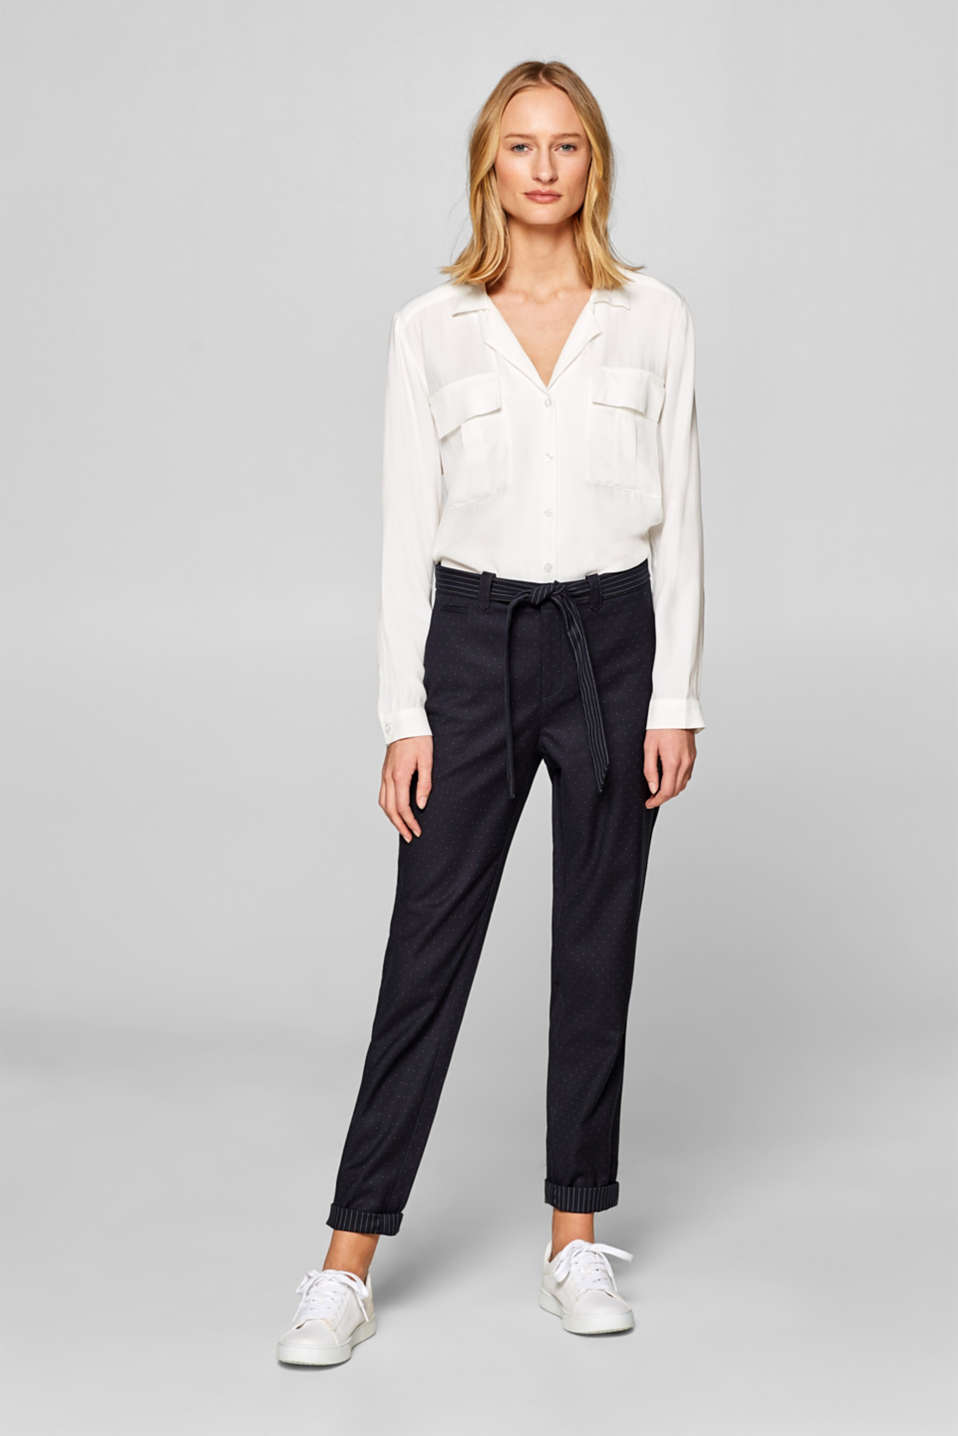 Esprit - Stretch chinos with a fabric belt and polka dots